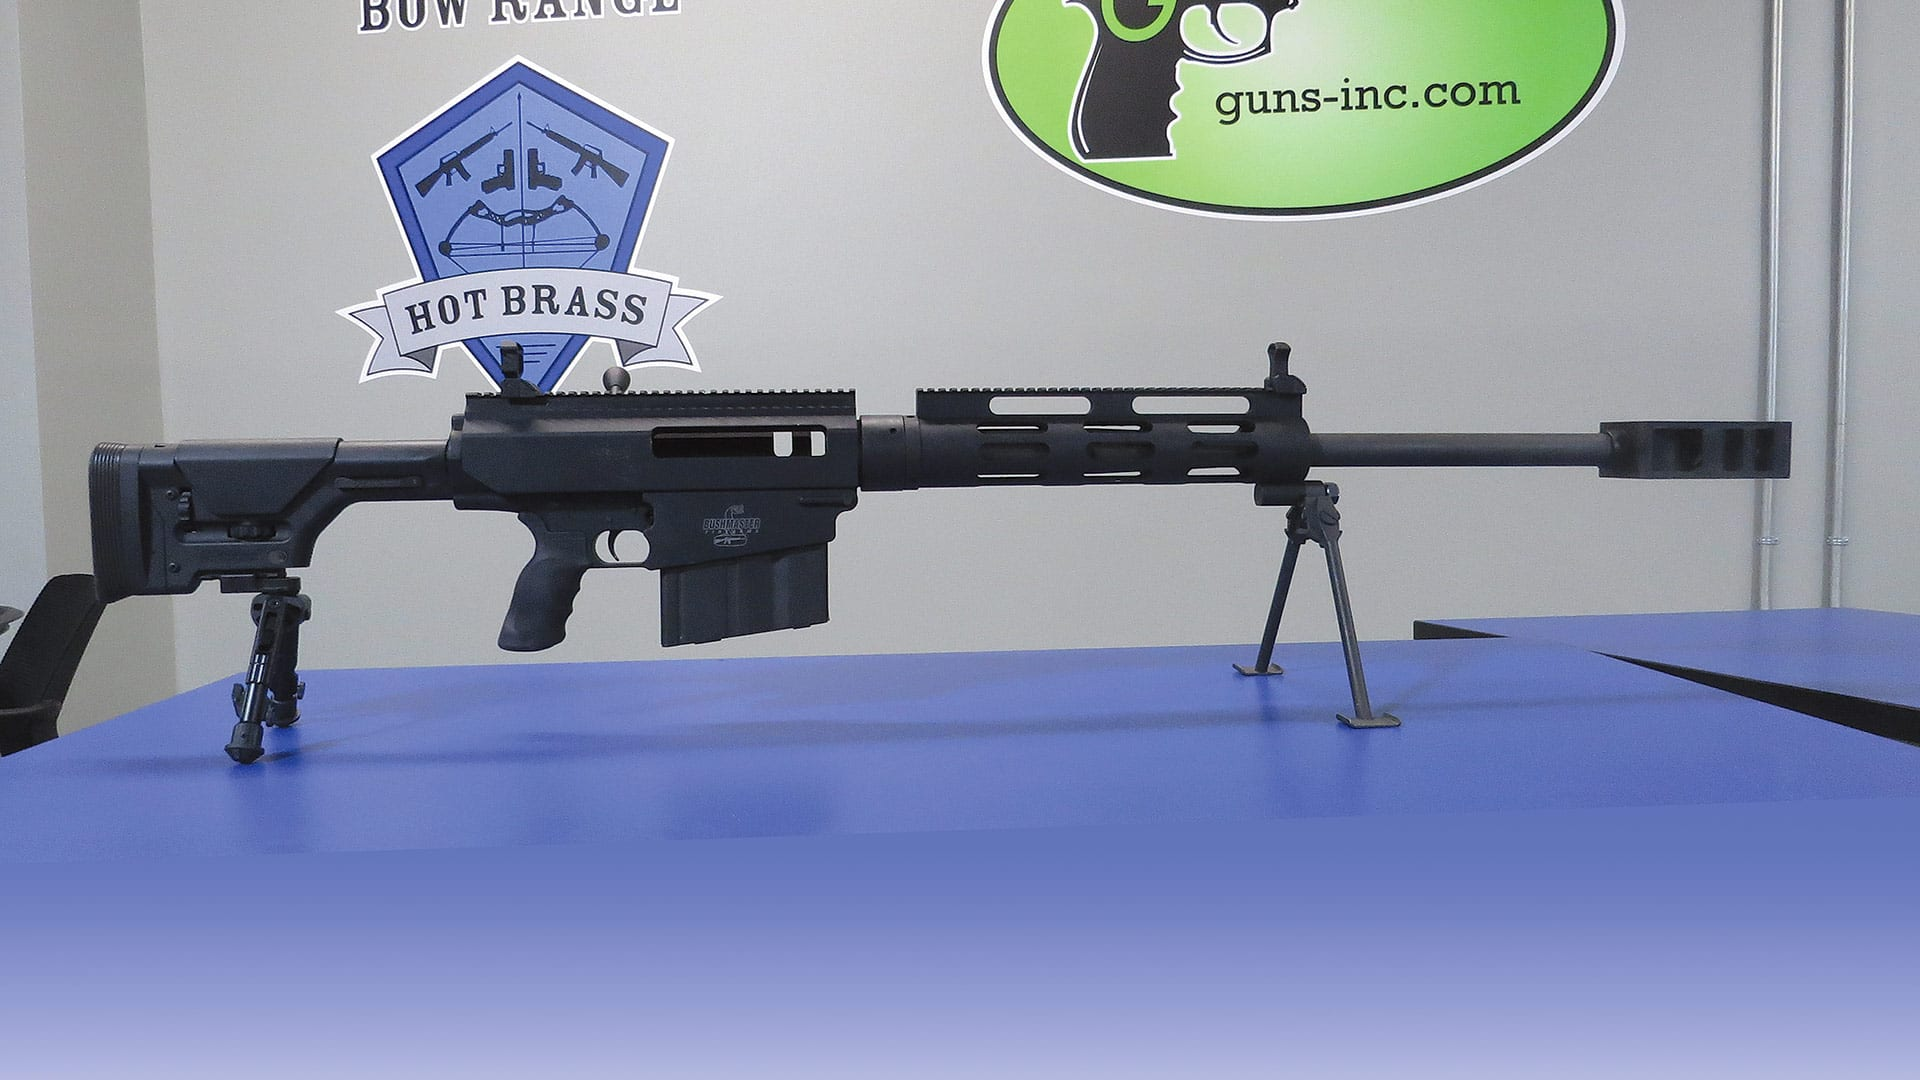 The .50 caliber sniper rifle is a popular attraction at Hot Brass, drawing shooters of all ages.